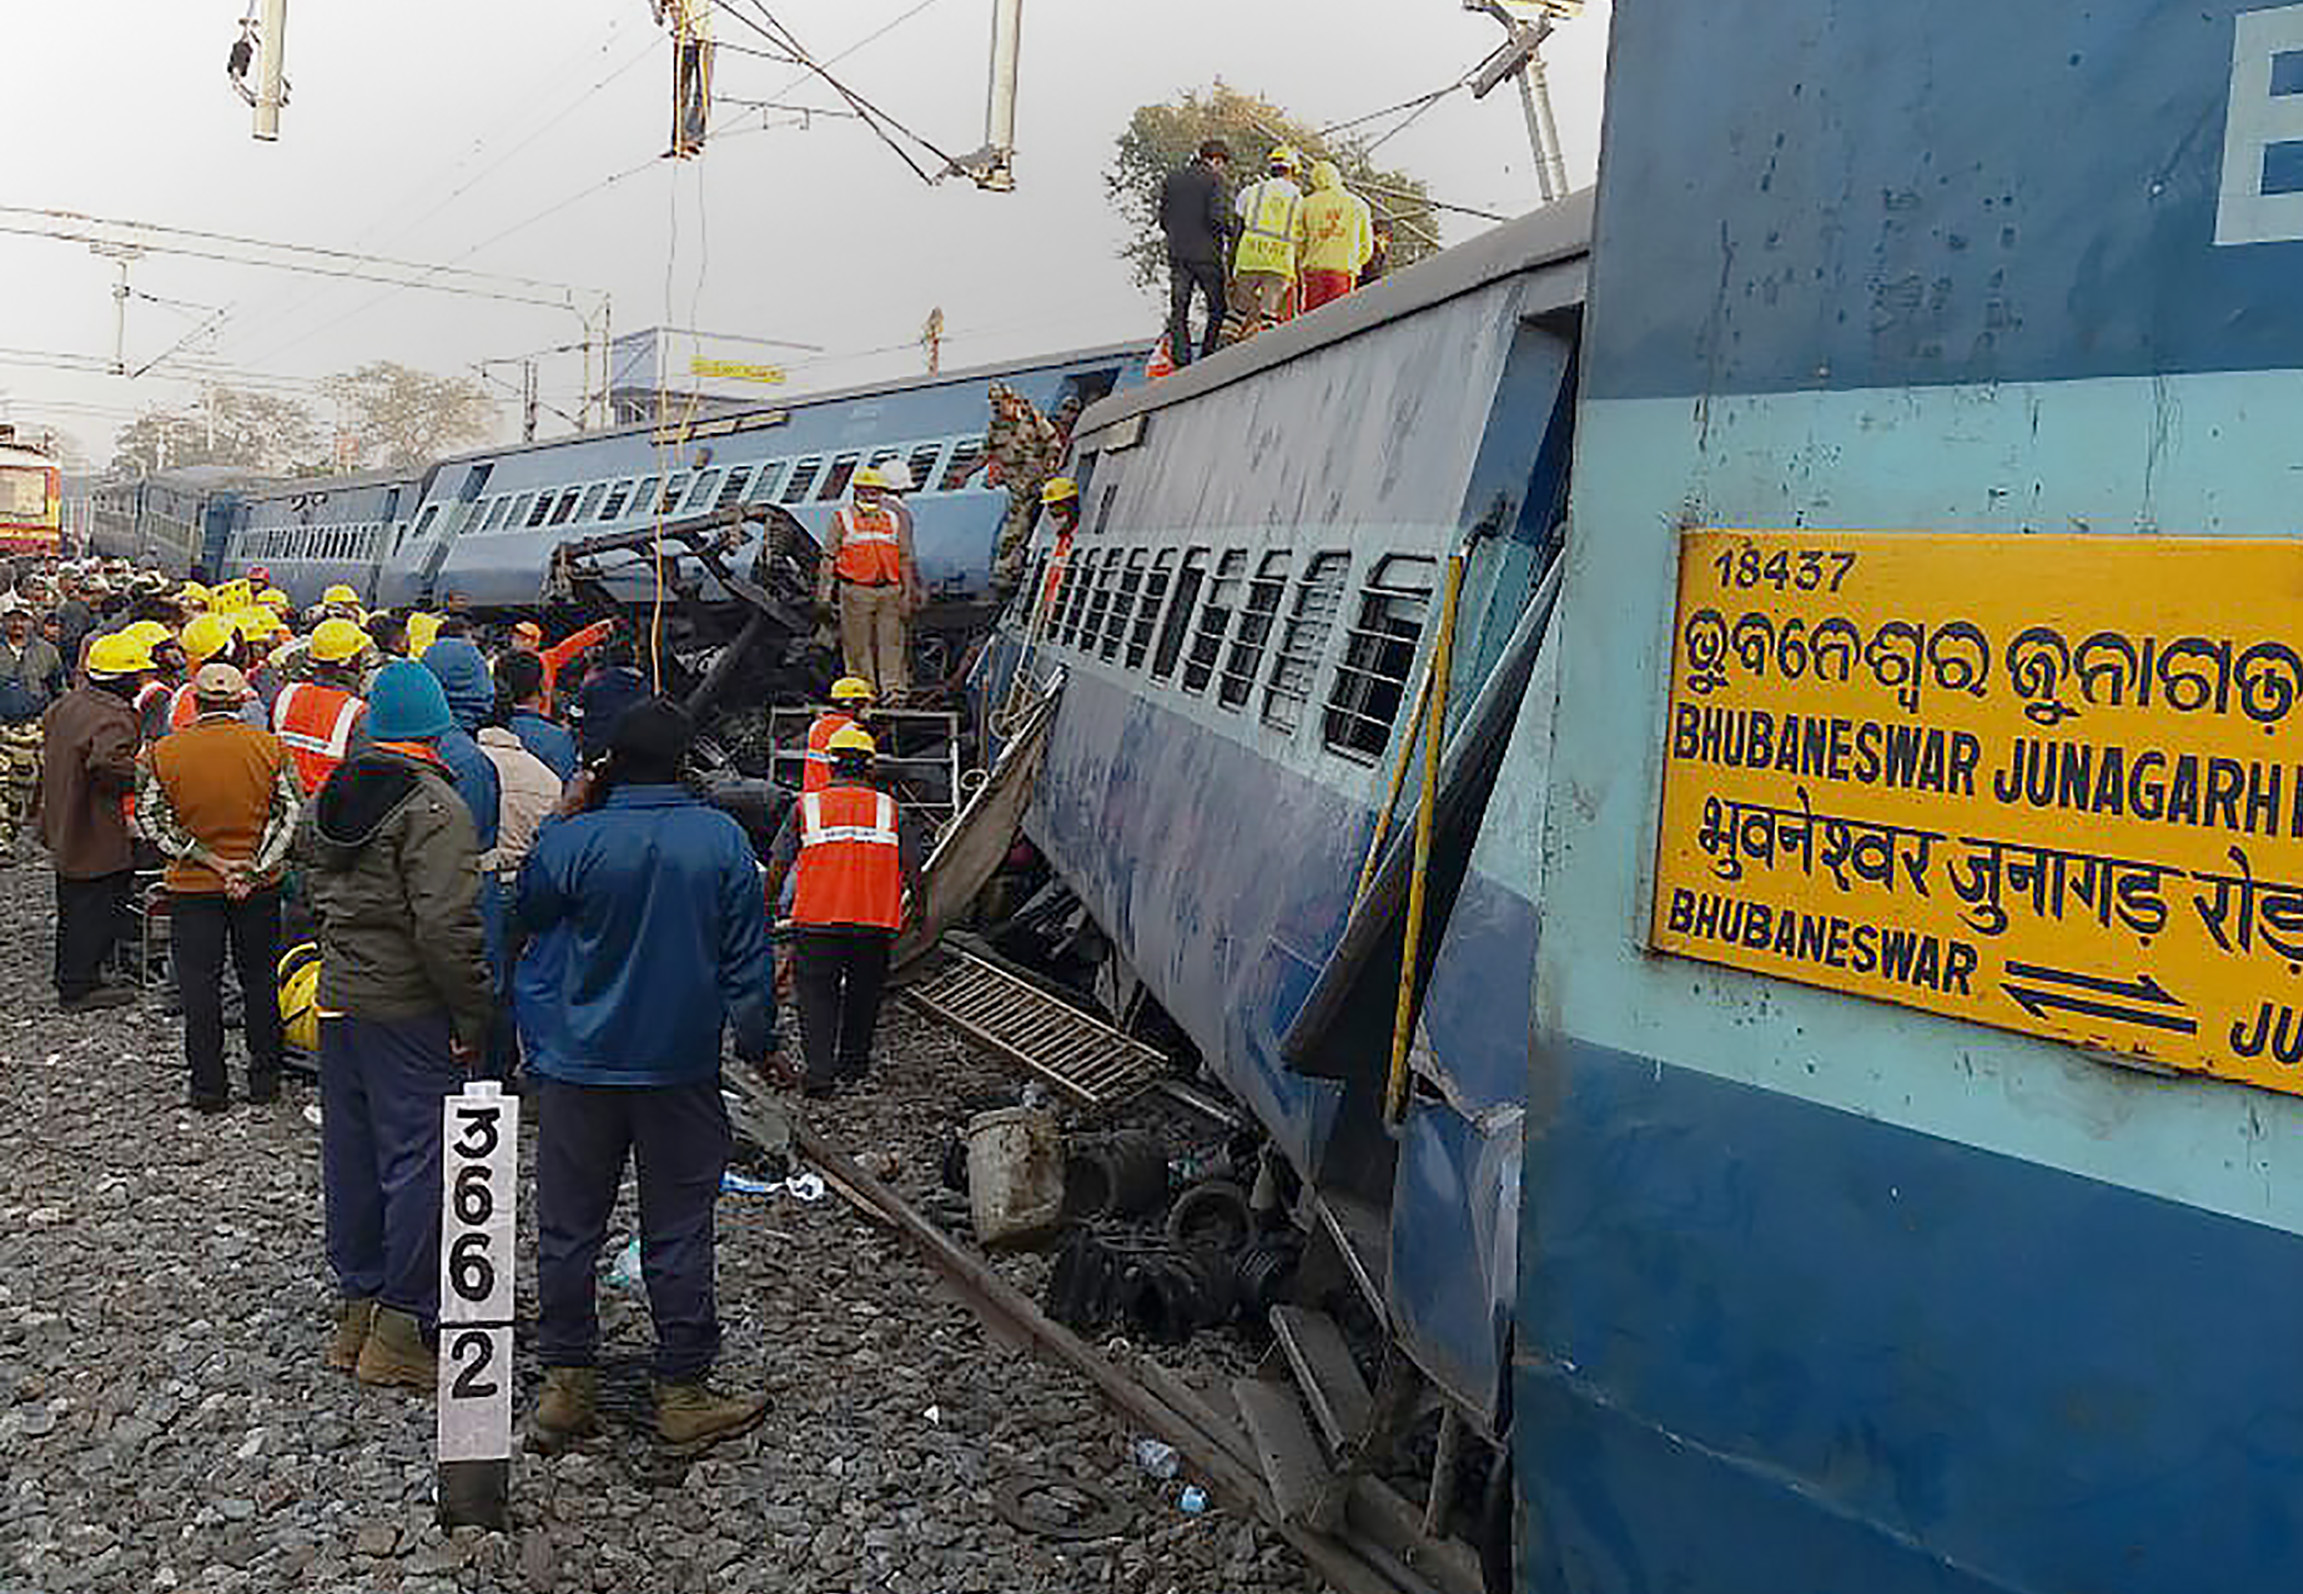 Rescue workers look for survivors at the site of the derailment of the Jagdalpur-Bhubaneswar express train near Kuneru station in southern Andhra Pradesh state on Jan. 22, 2017.